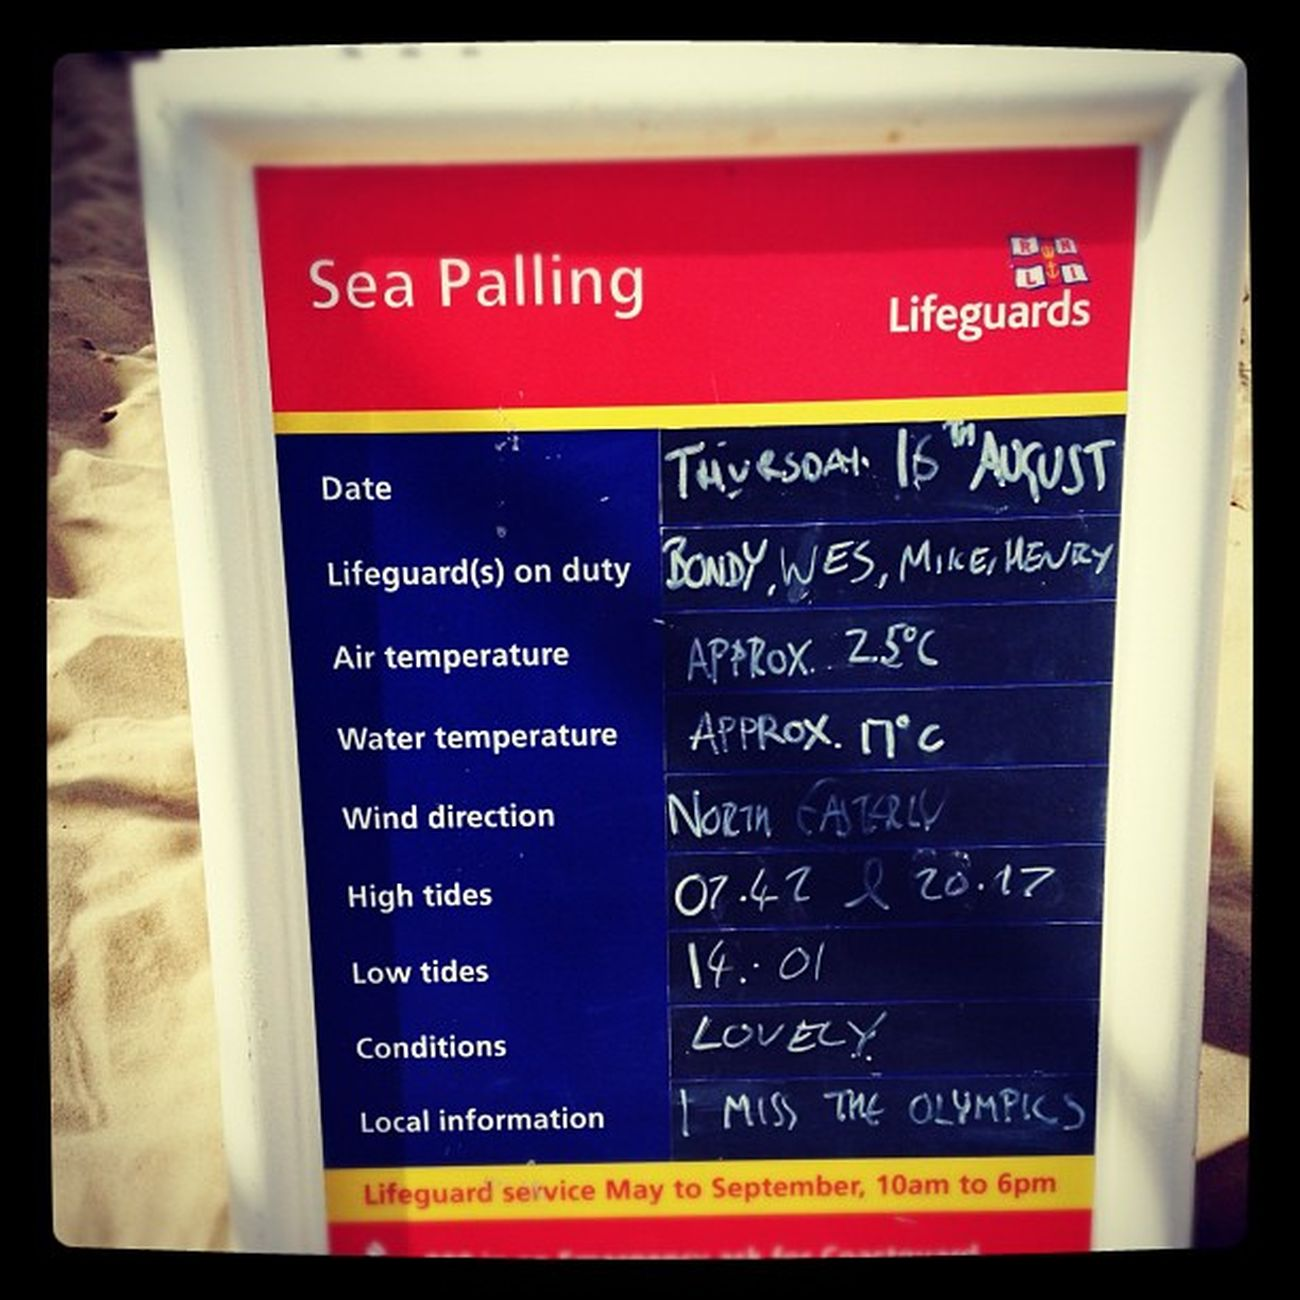 Love this.... Check out the local information line RNLI Seapalling Notfolk Beach sun